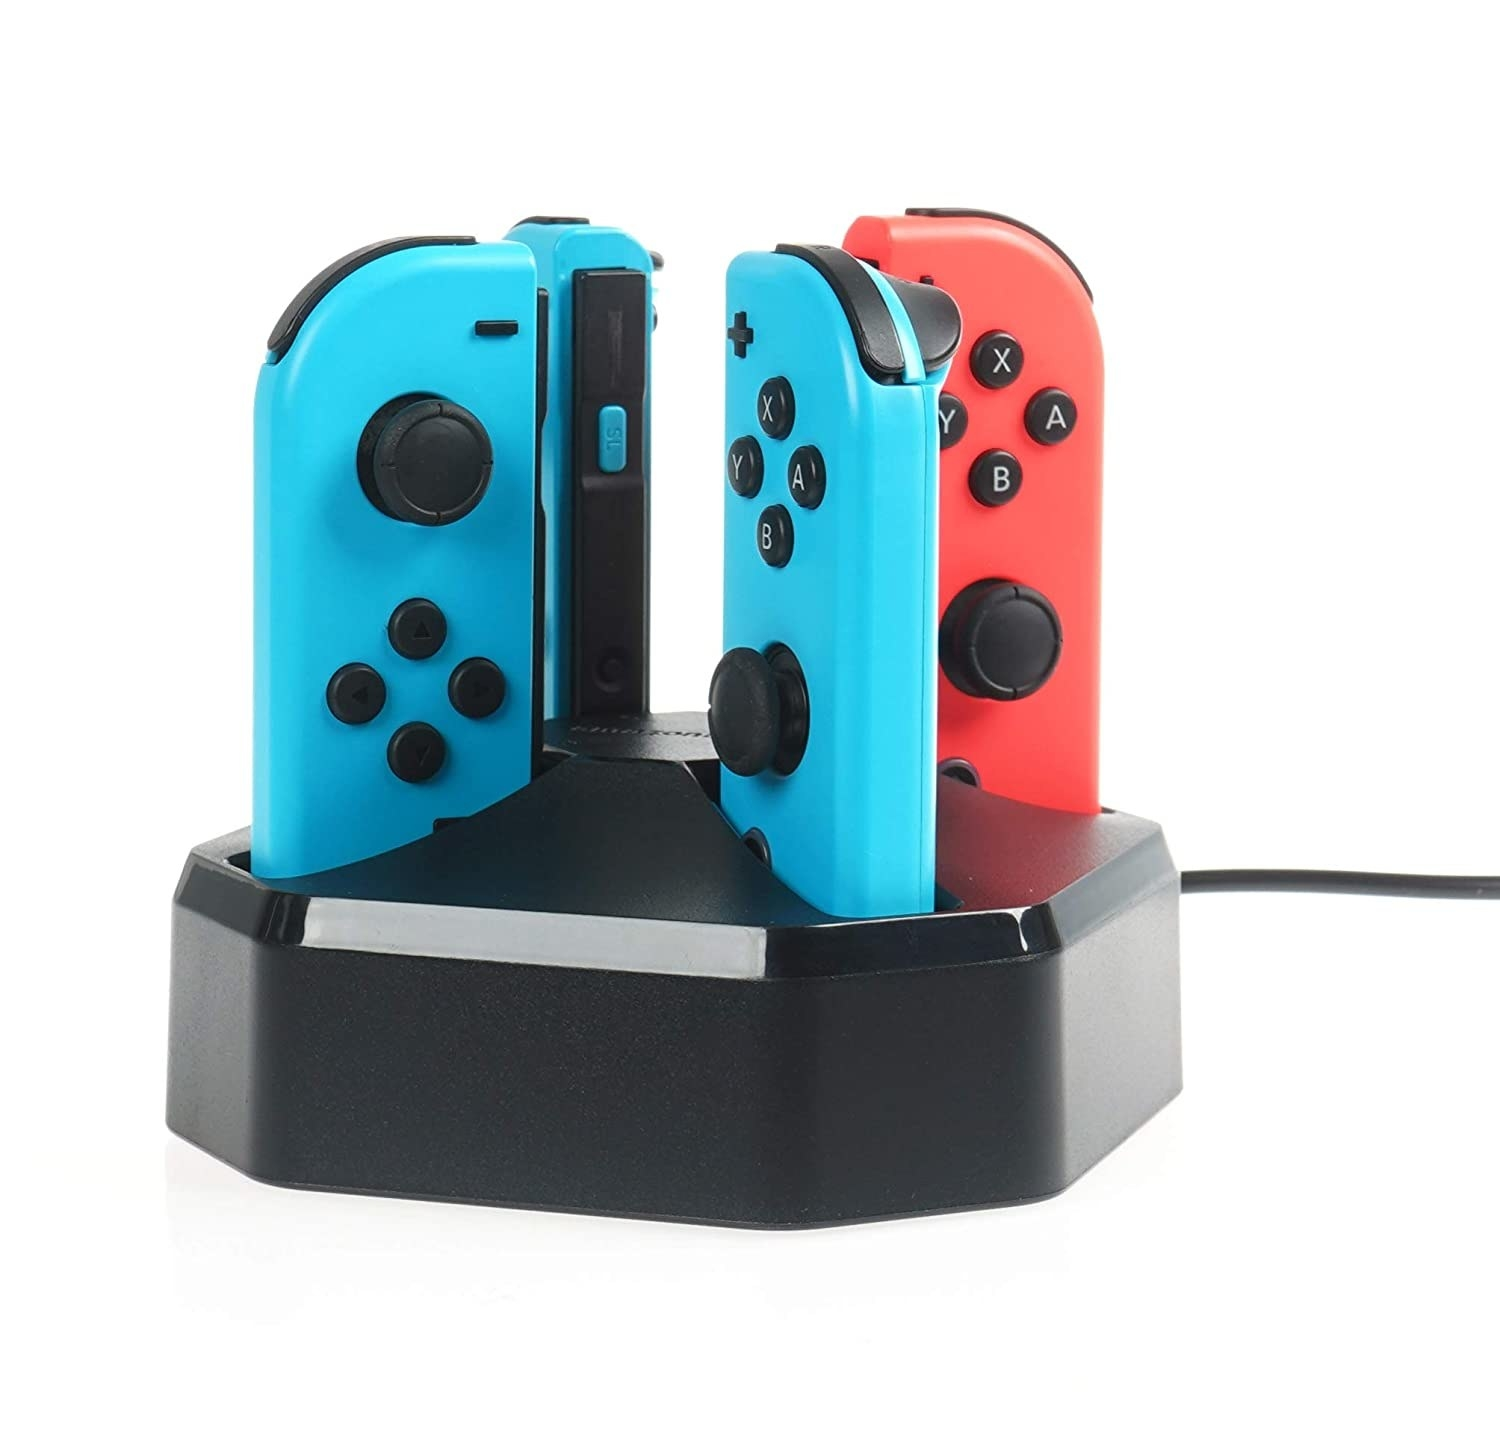 A square doc with a Joy-Con mounted at each corner